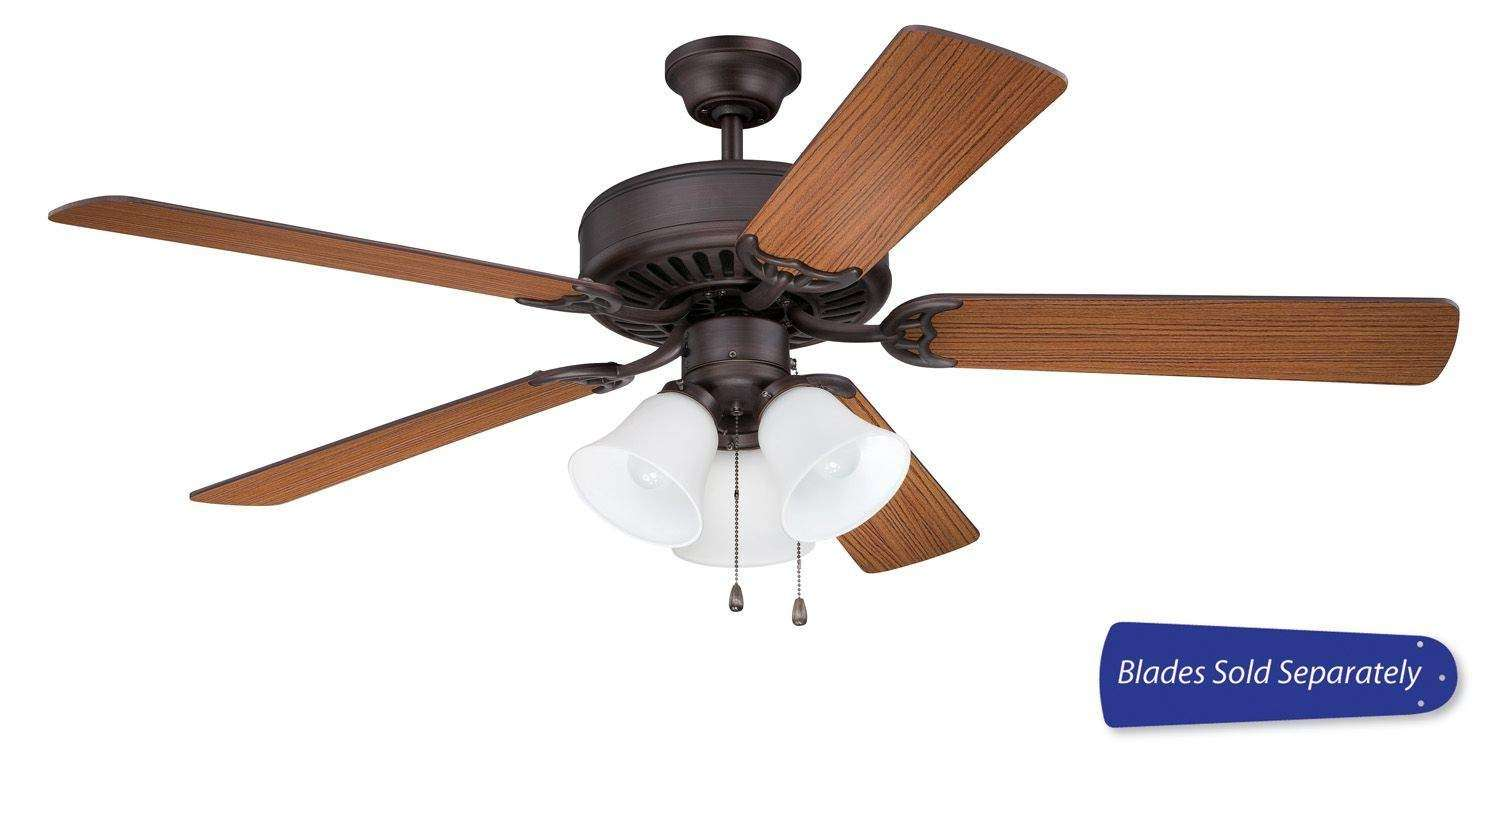 Craftmade Pro Builder 205 Ceiling Fan Model CF-C205ABZ in Aged Bronze Brushed